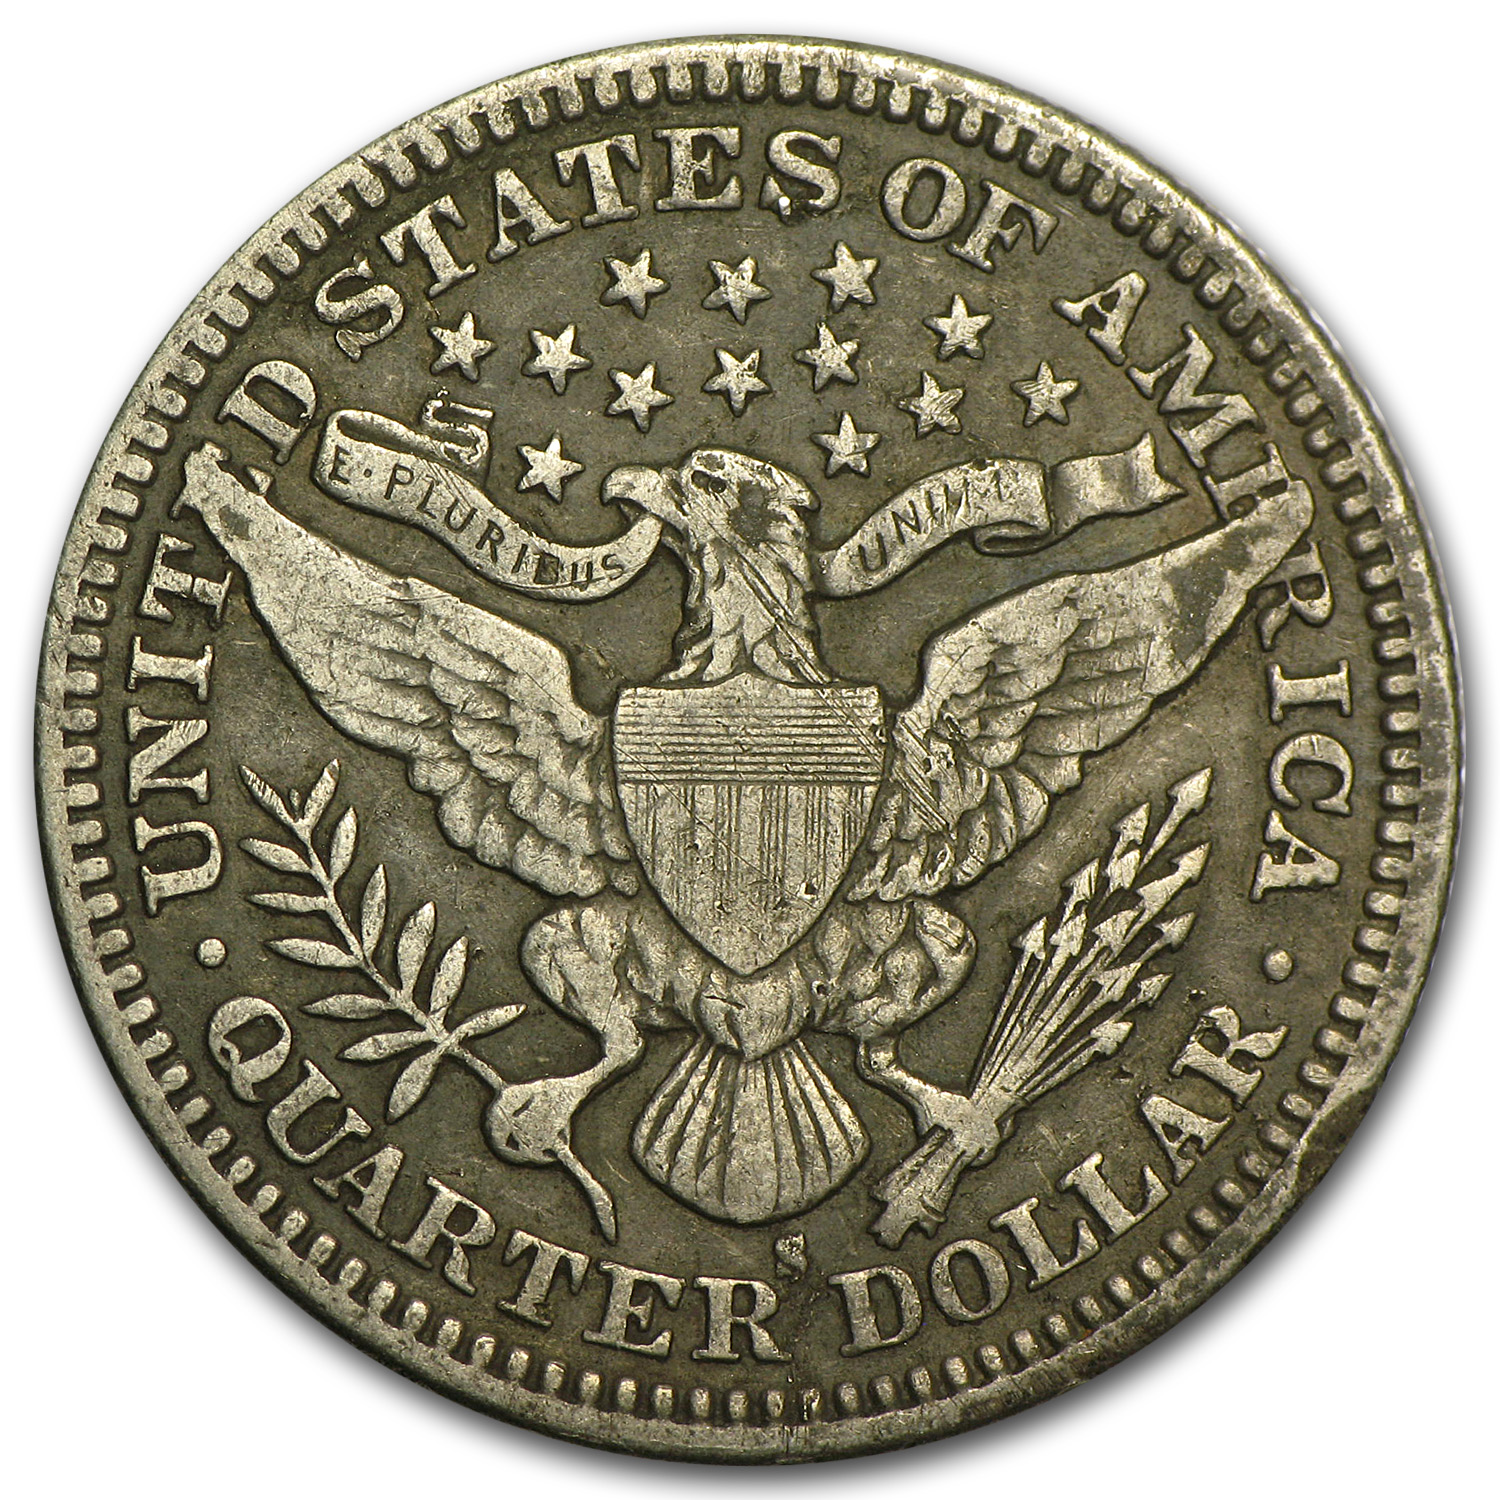 1911-S Barber Quarter - Very Fine